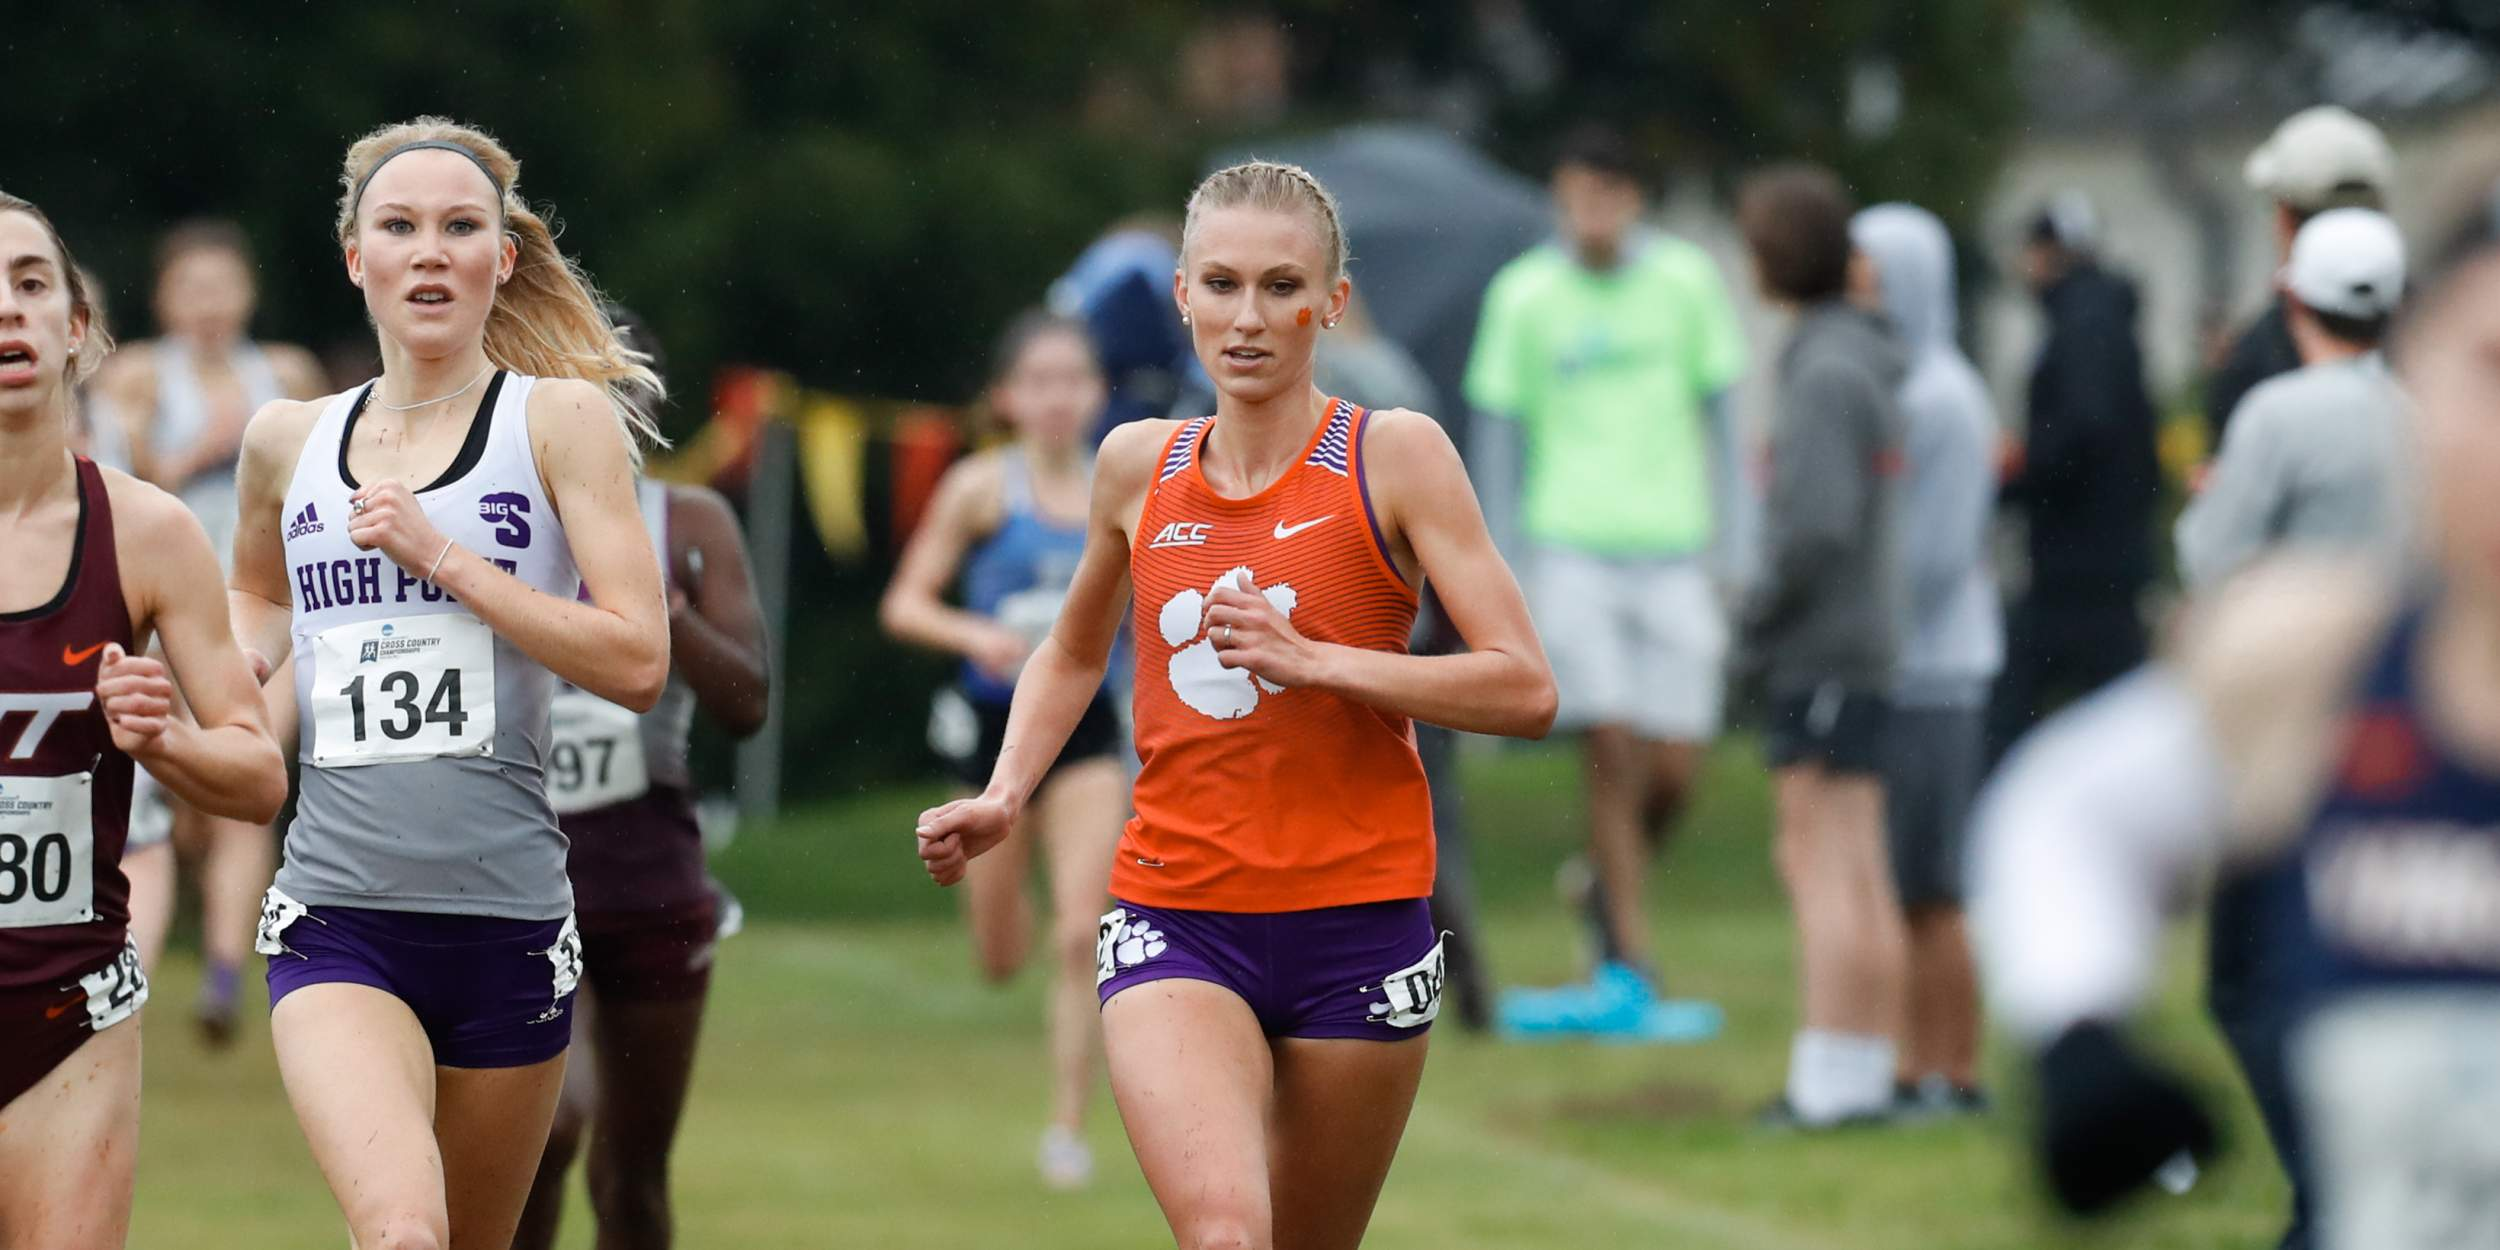 Morris Wins, 14 Athletes Earn Personal Bests at Notre Dame